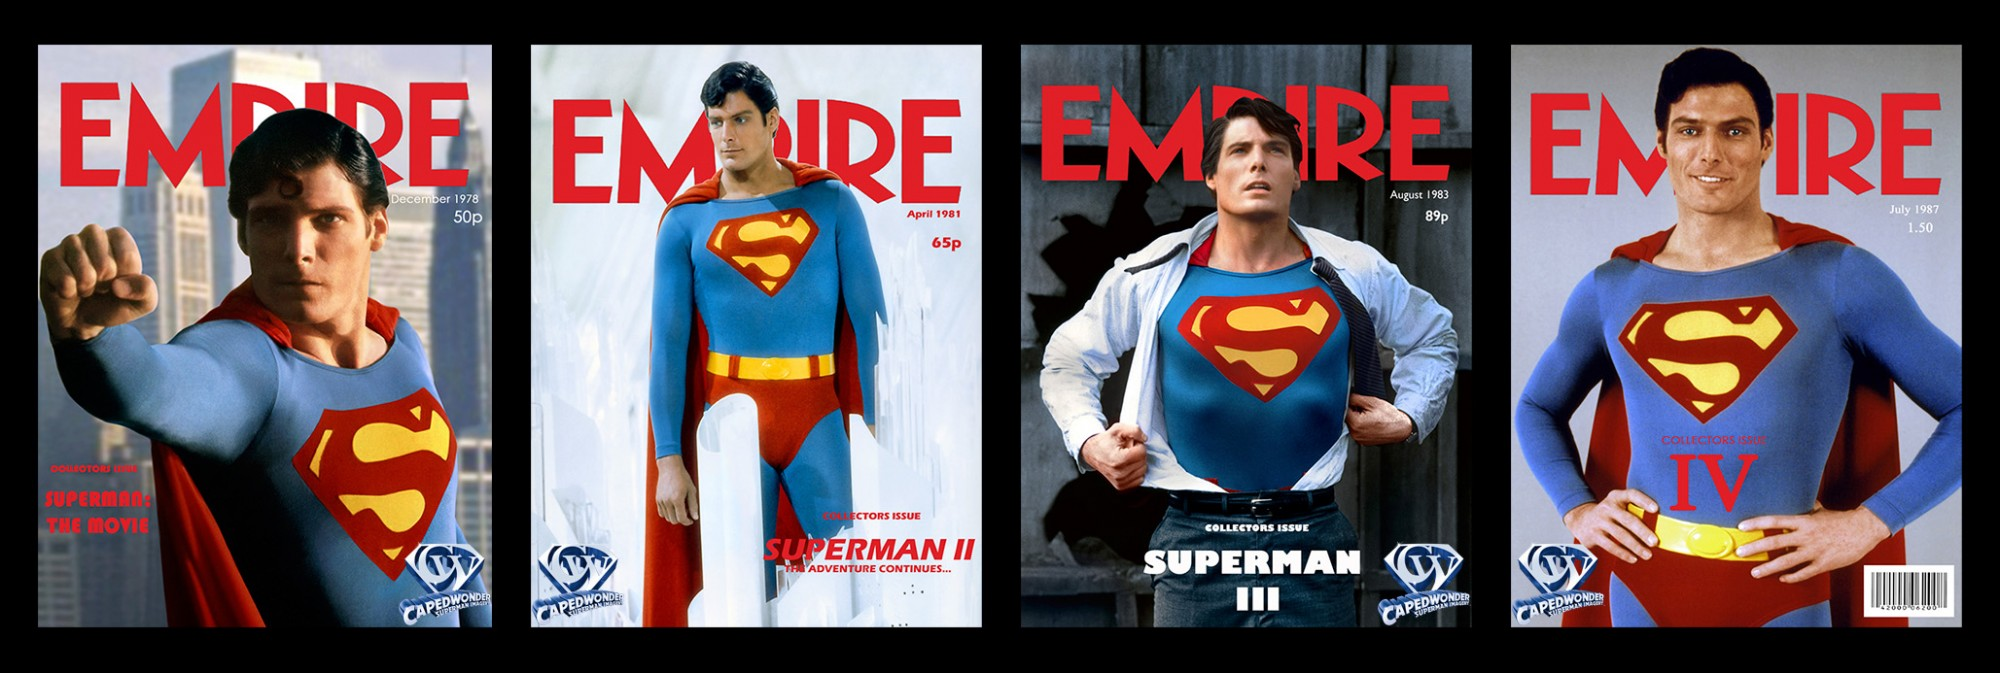 CW-custom-Empire-covers